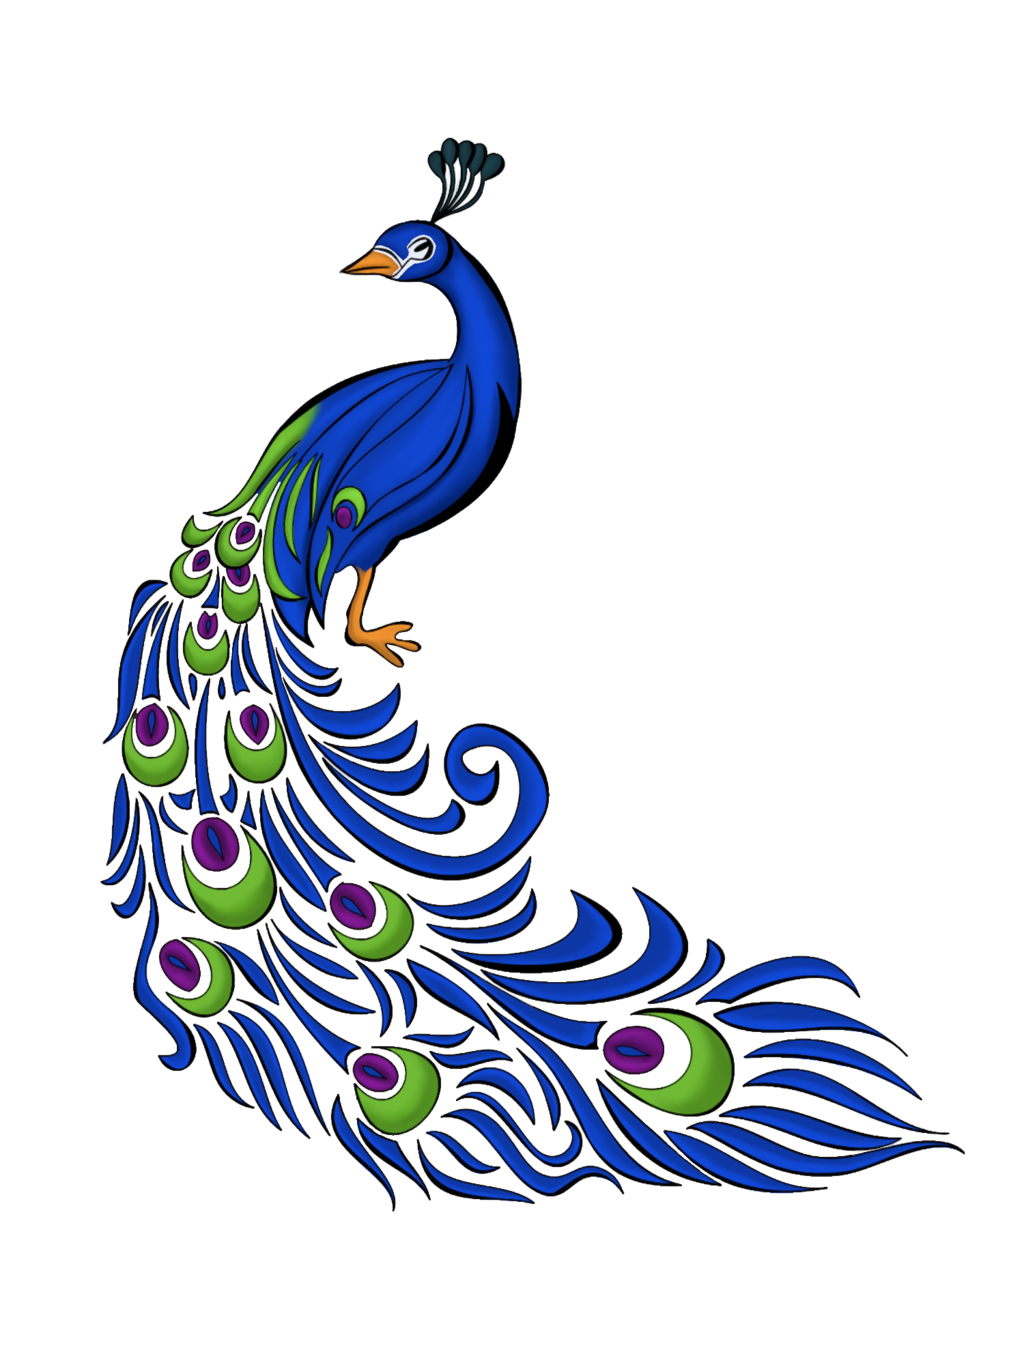 Clipart door vector. Peacock feather free graphics